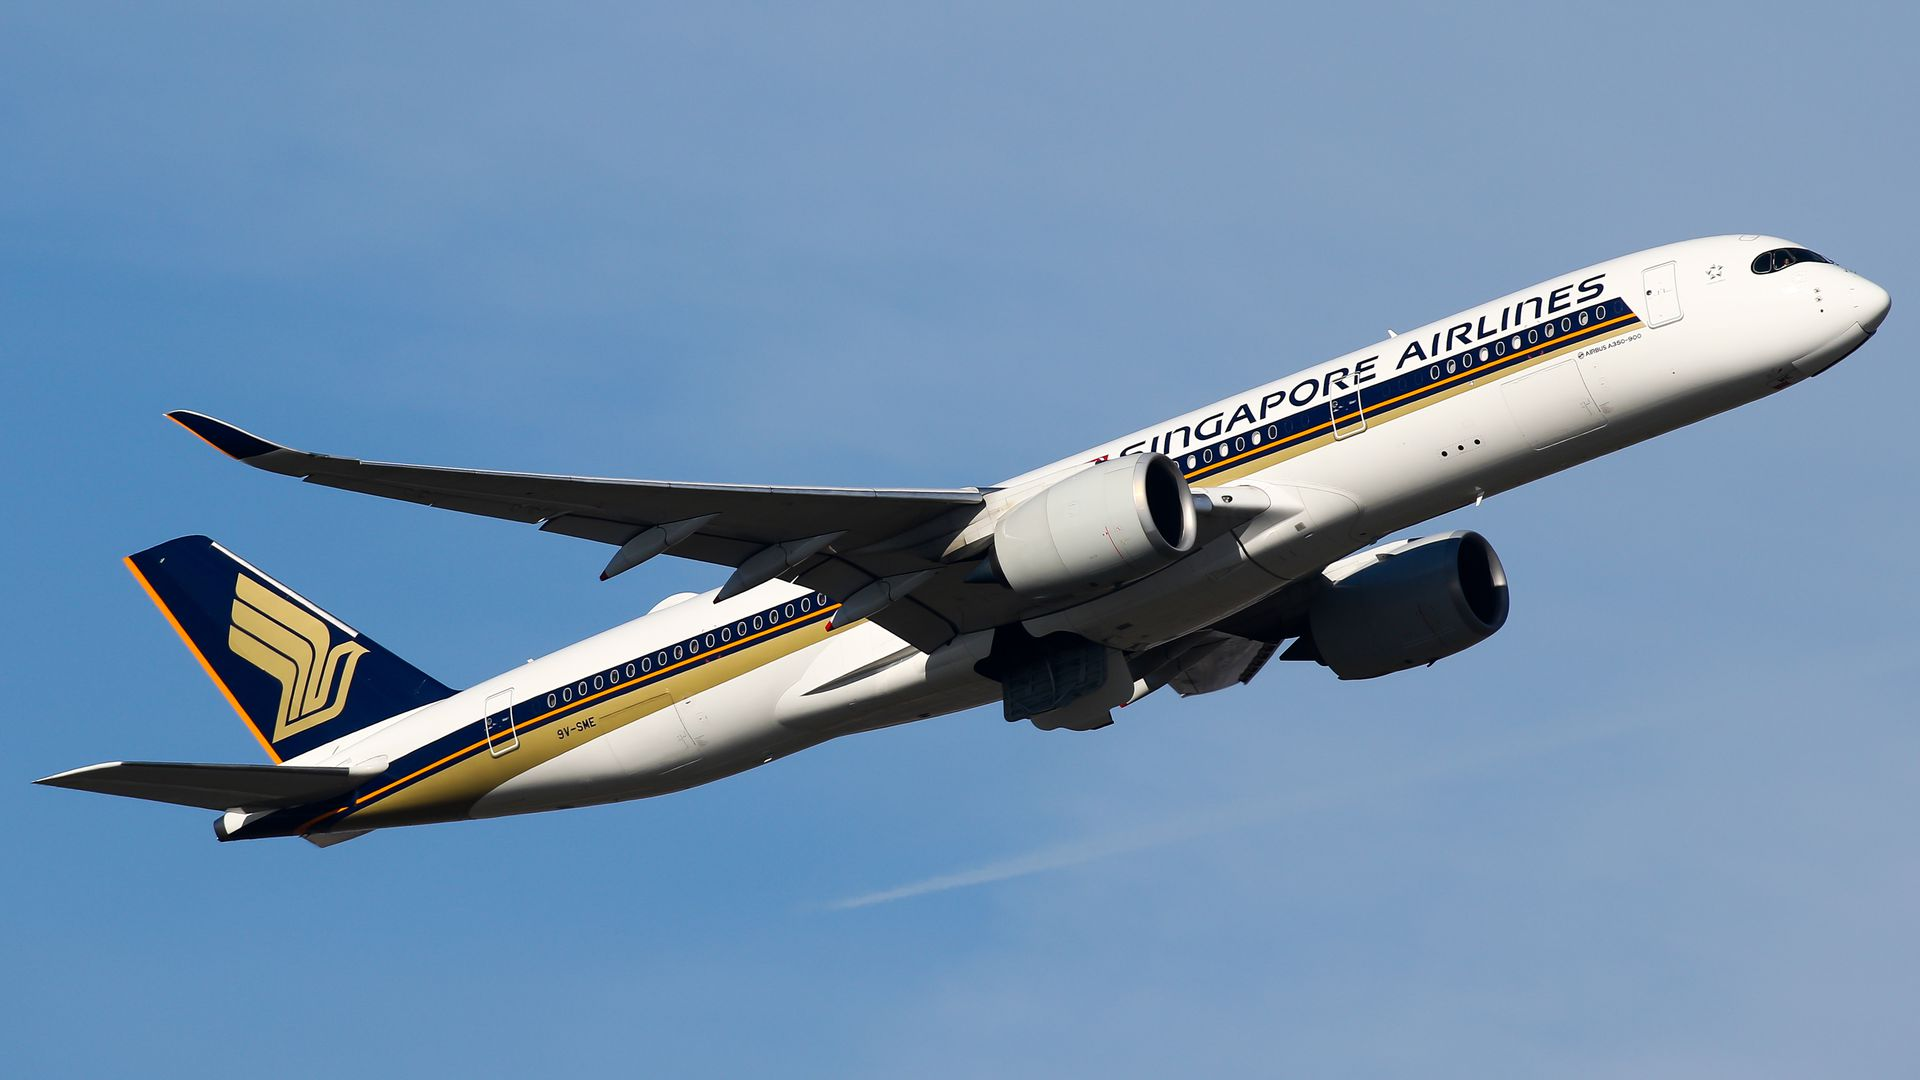 Singapore airlines flight taking off